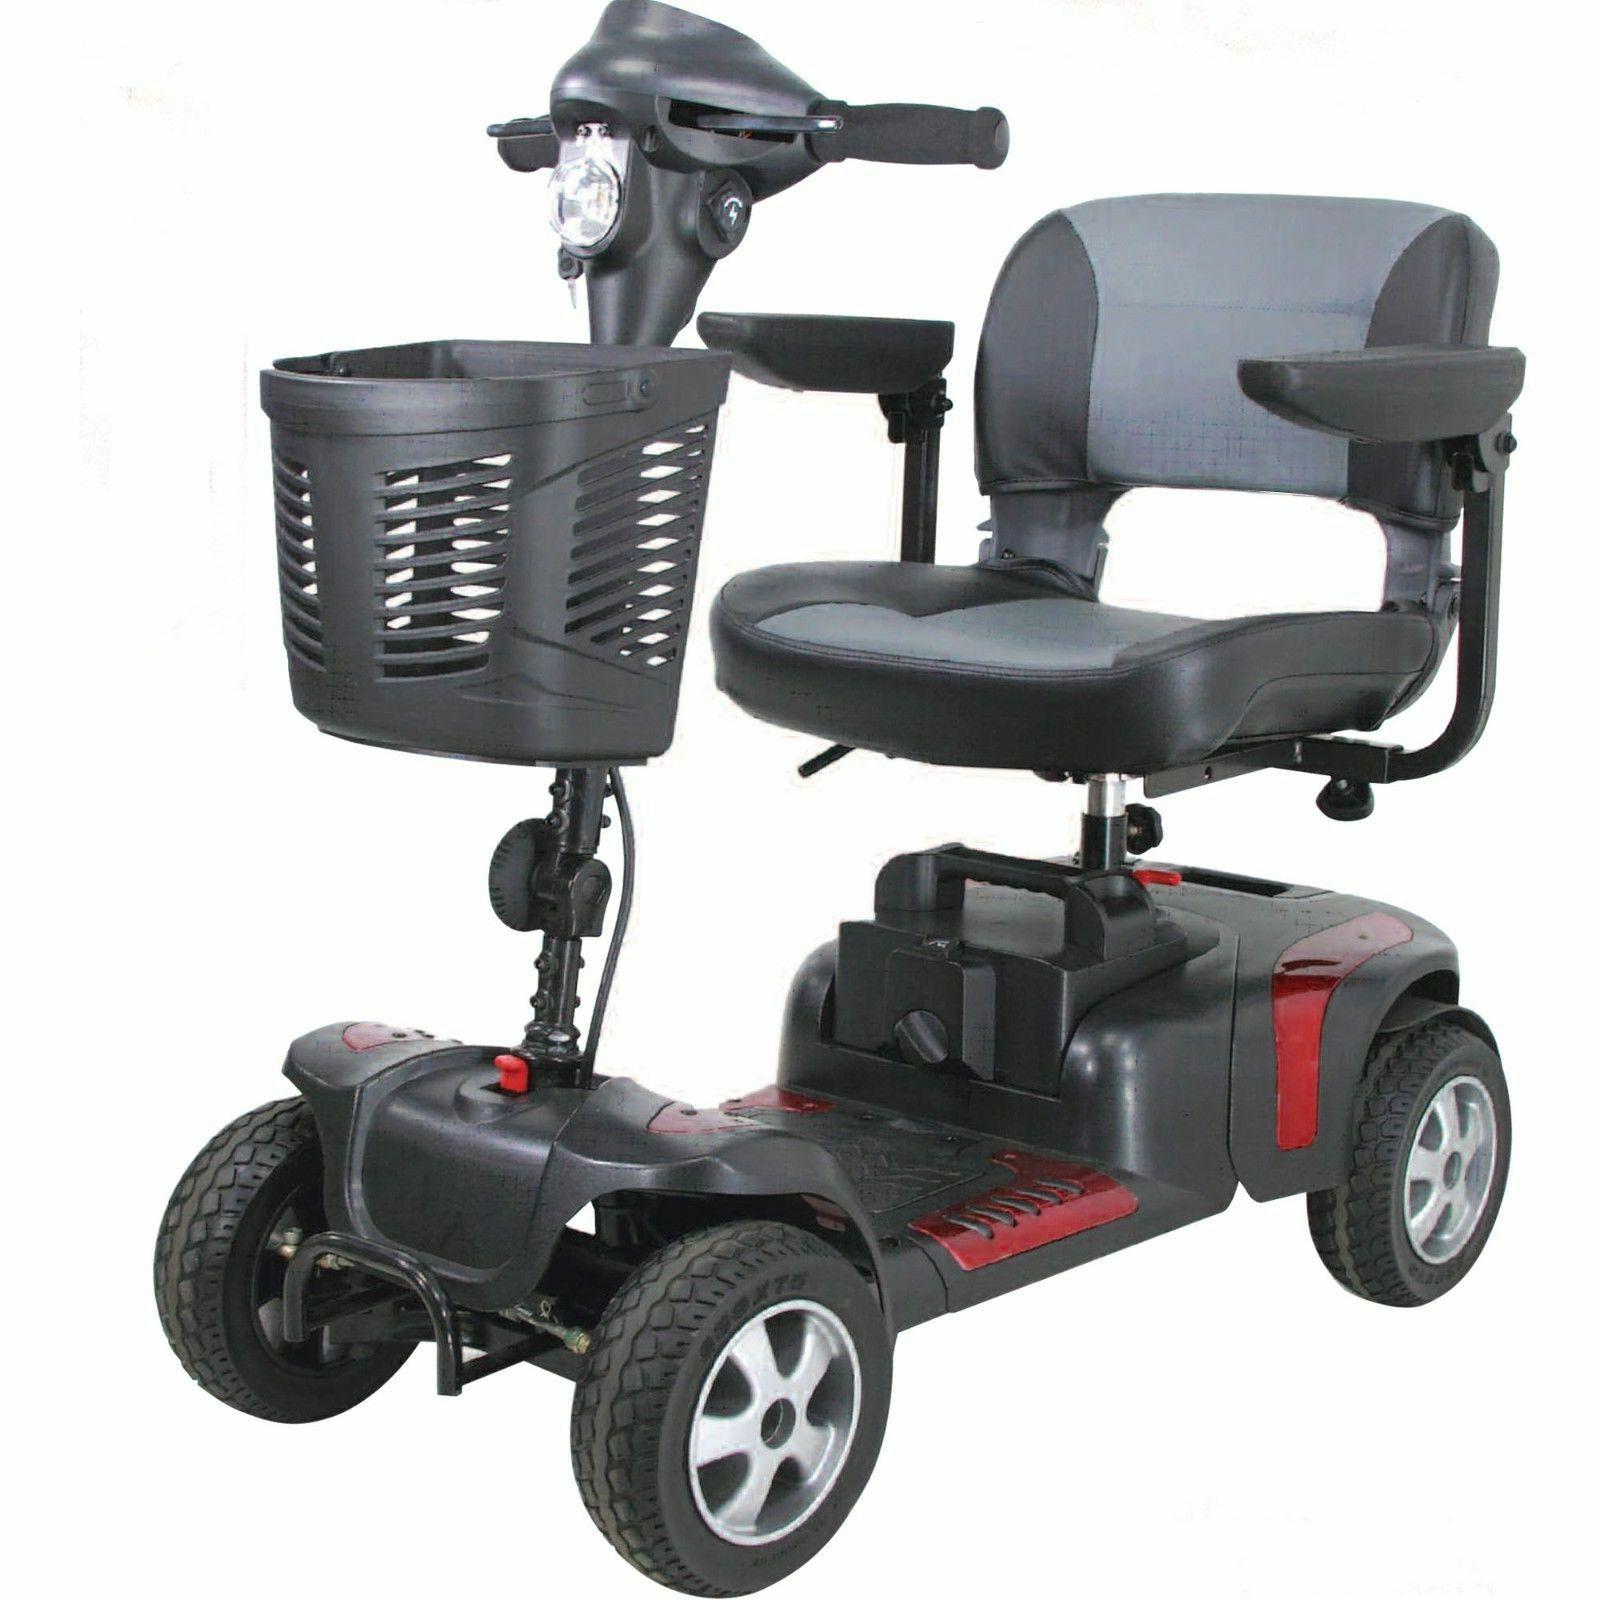 new scooter 20 wide seat 4 wheel